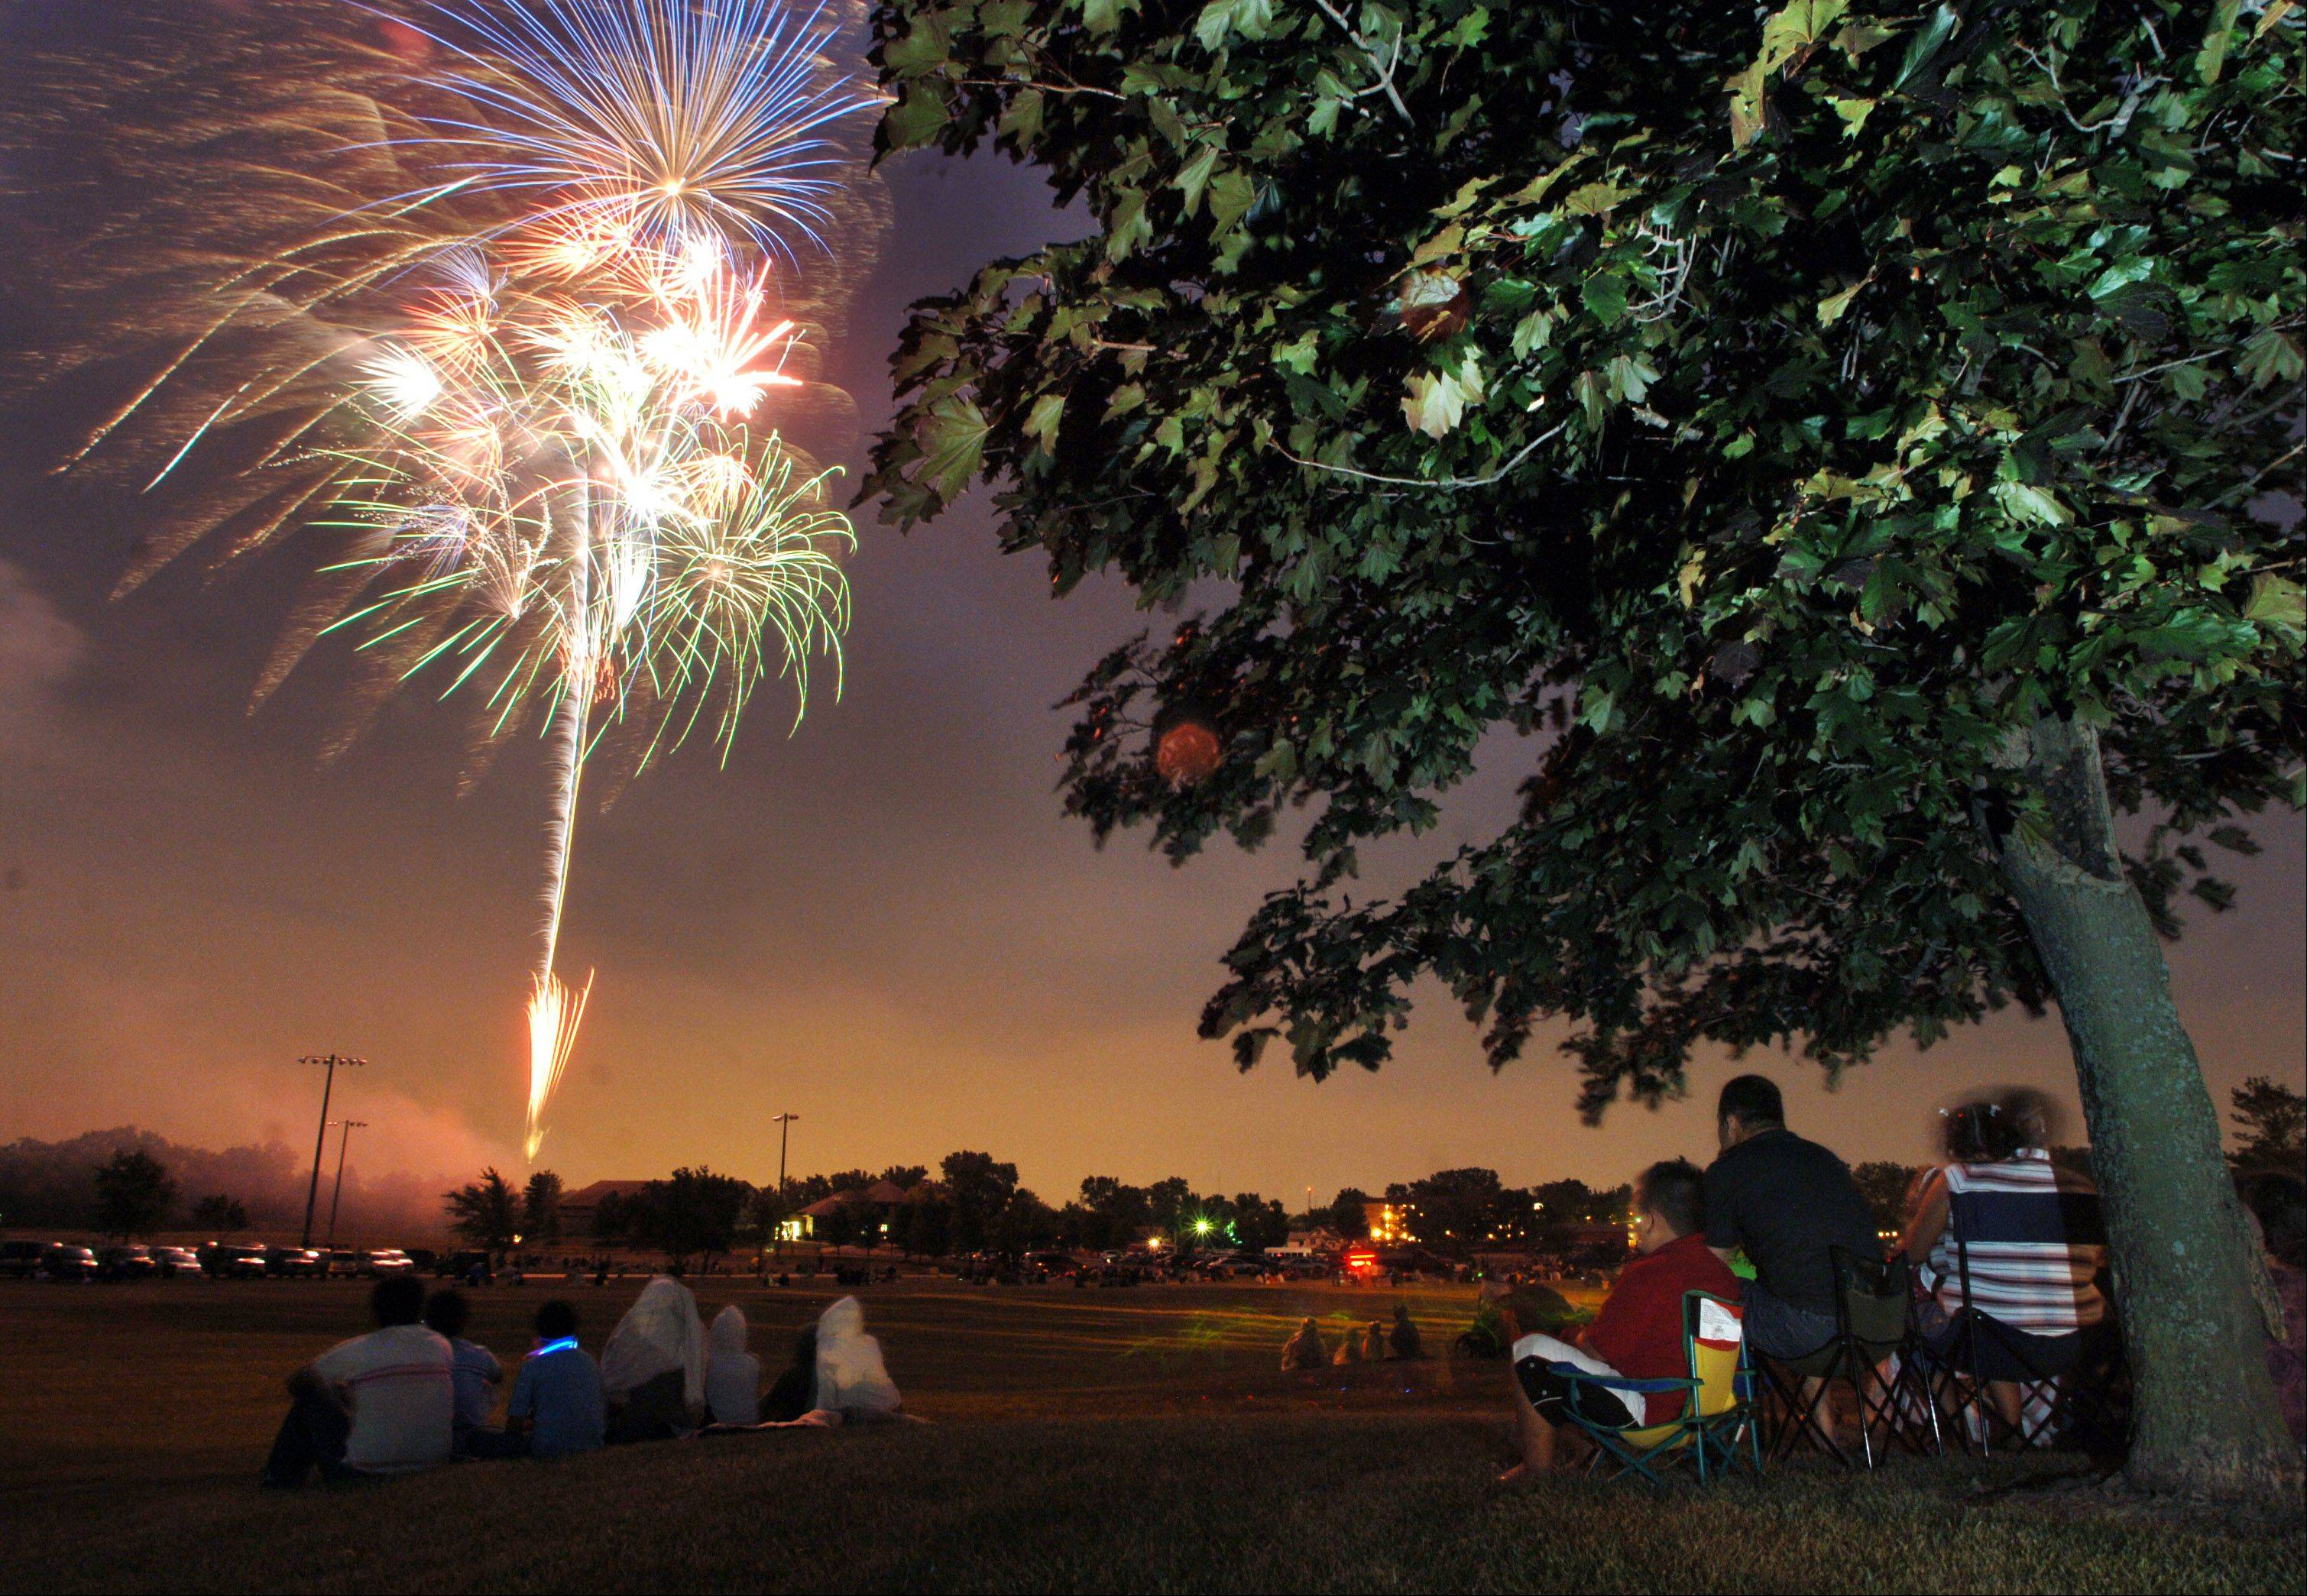 Several suburbs are canceling fireworks shows due to the heat and dry weather — or damage from storms.